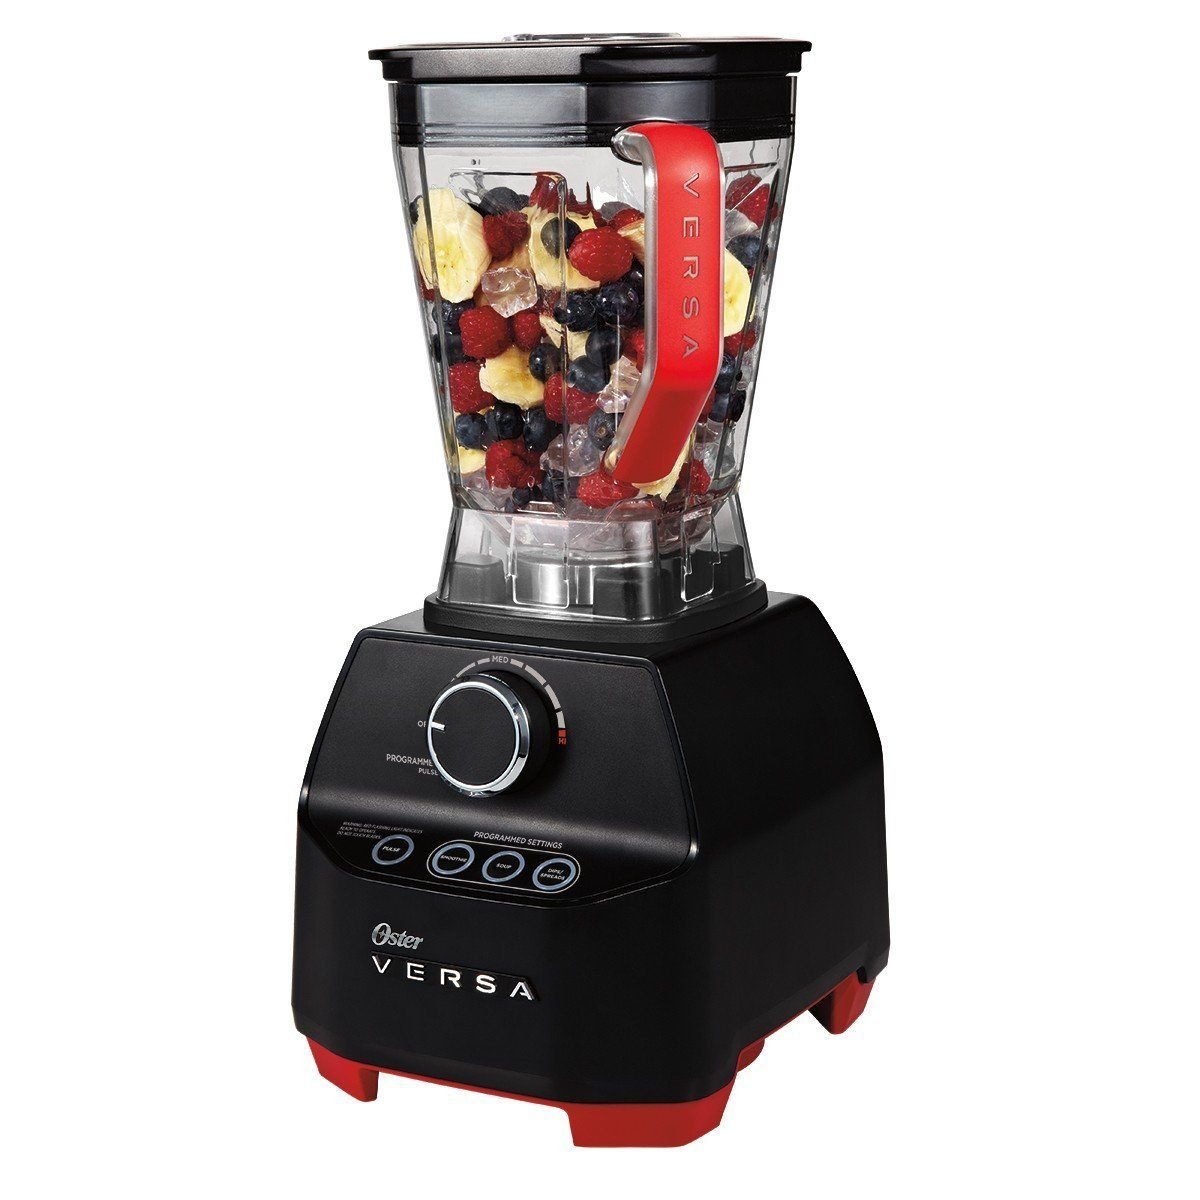 Image 4 2 - The 7 Best Blenders For Homemade Smoothies